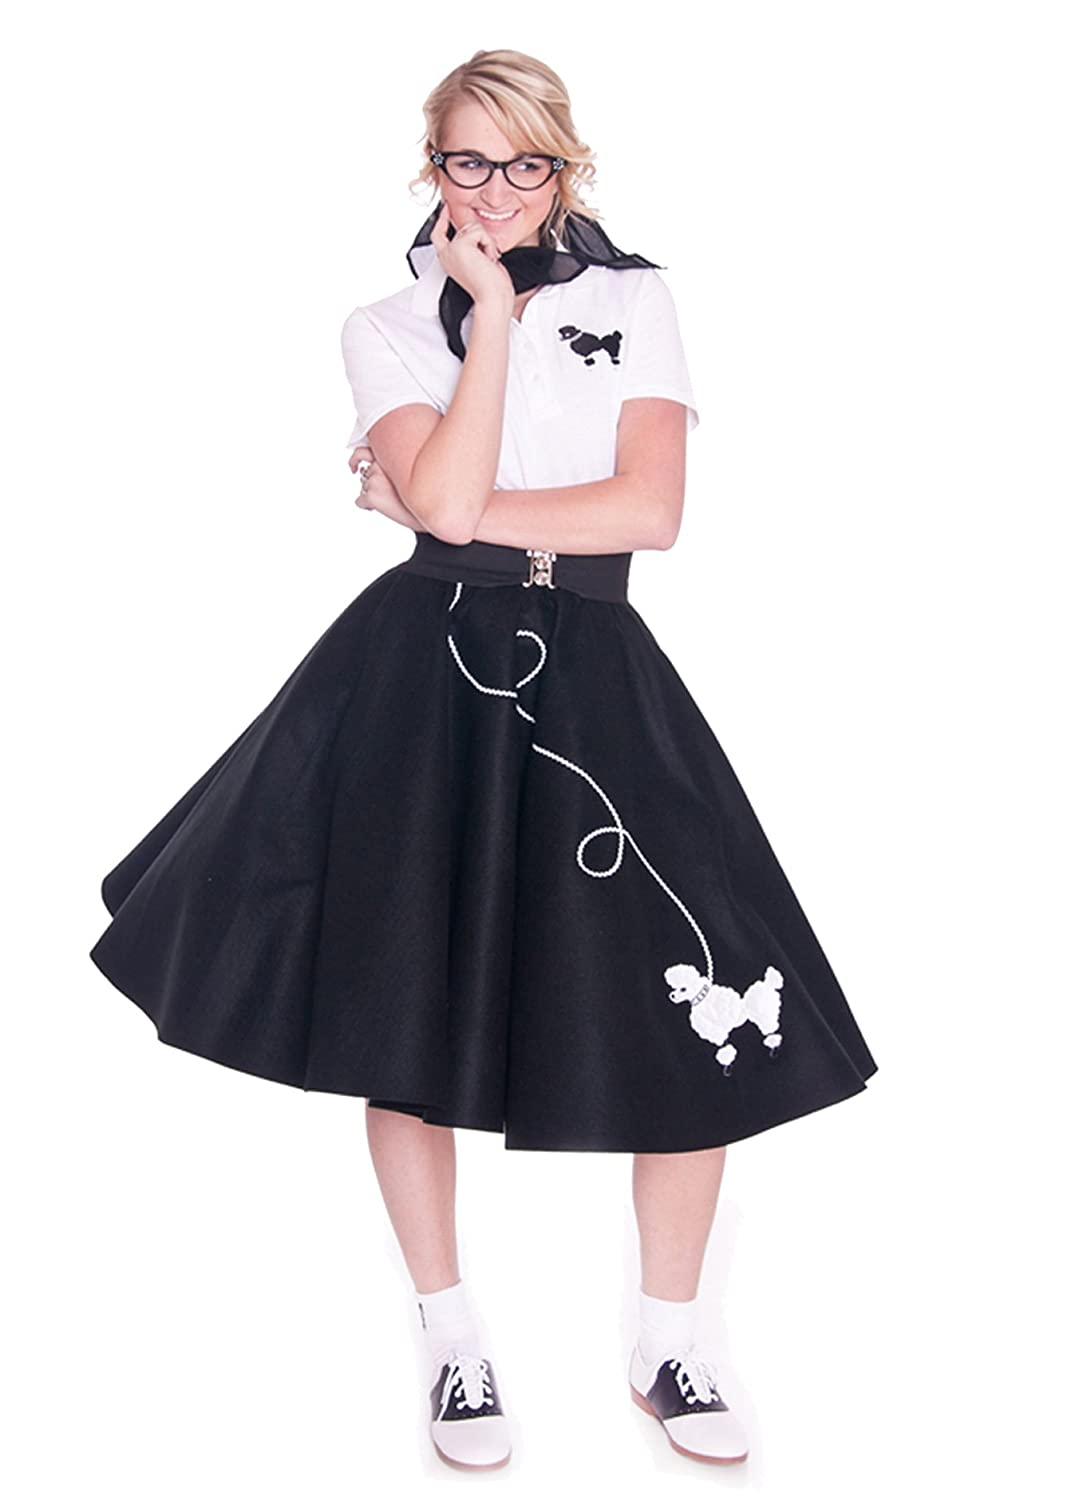 50s Costumes | 50s Halloween Costumes Hip Hop 50s Shop Adult Poodle Skirt $44.84 AT vintagedancer.com